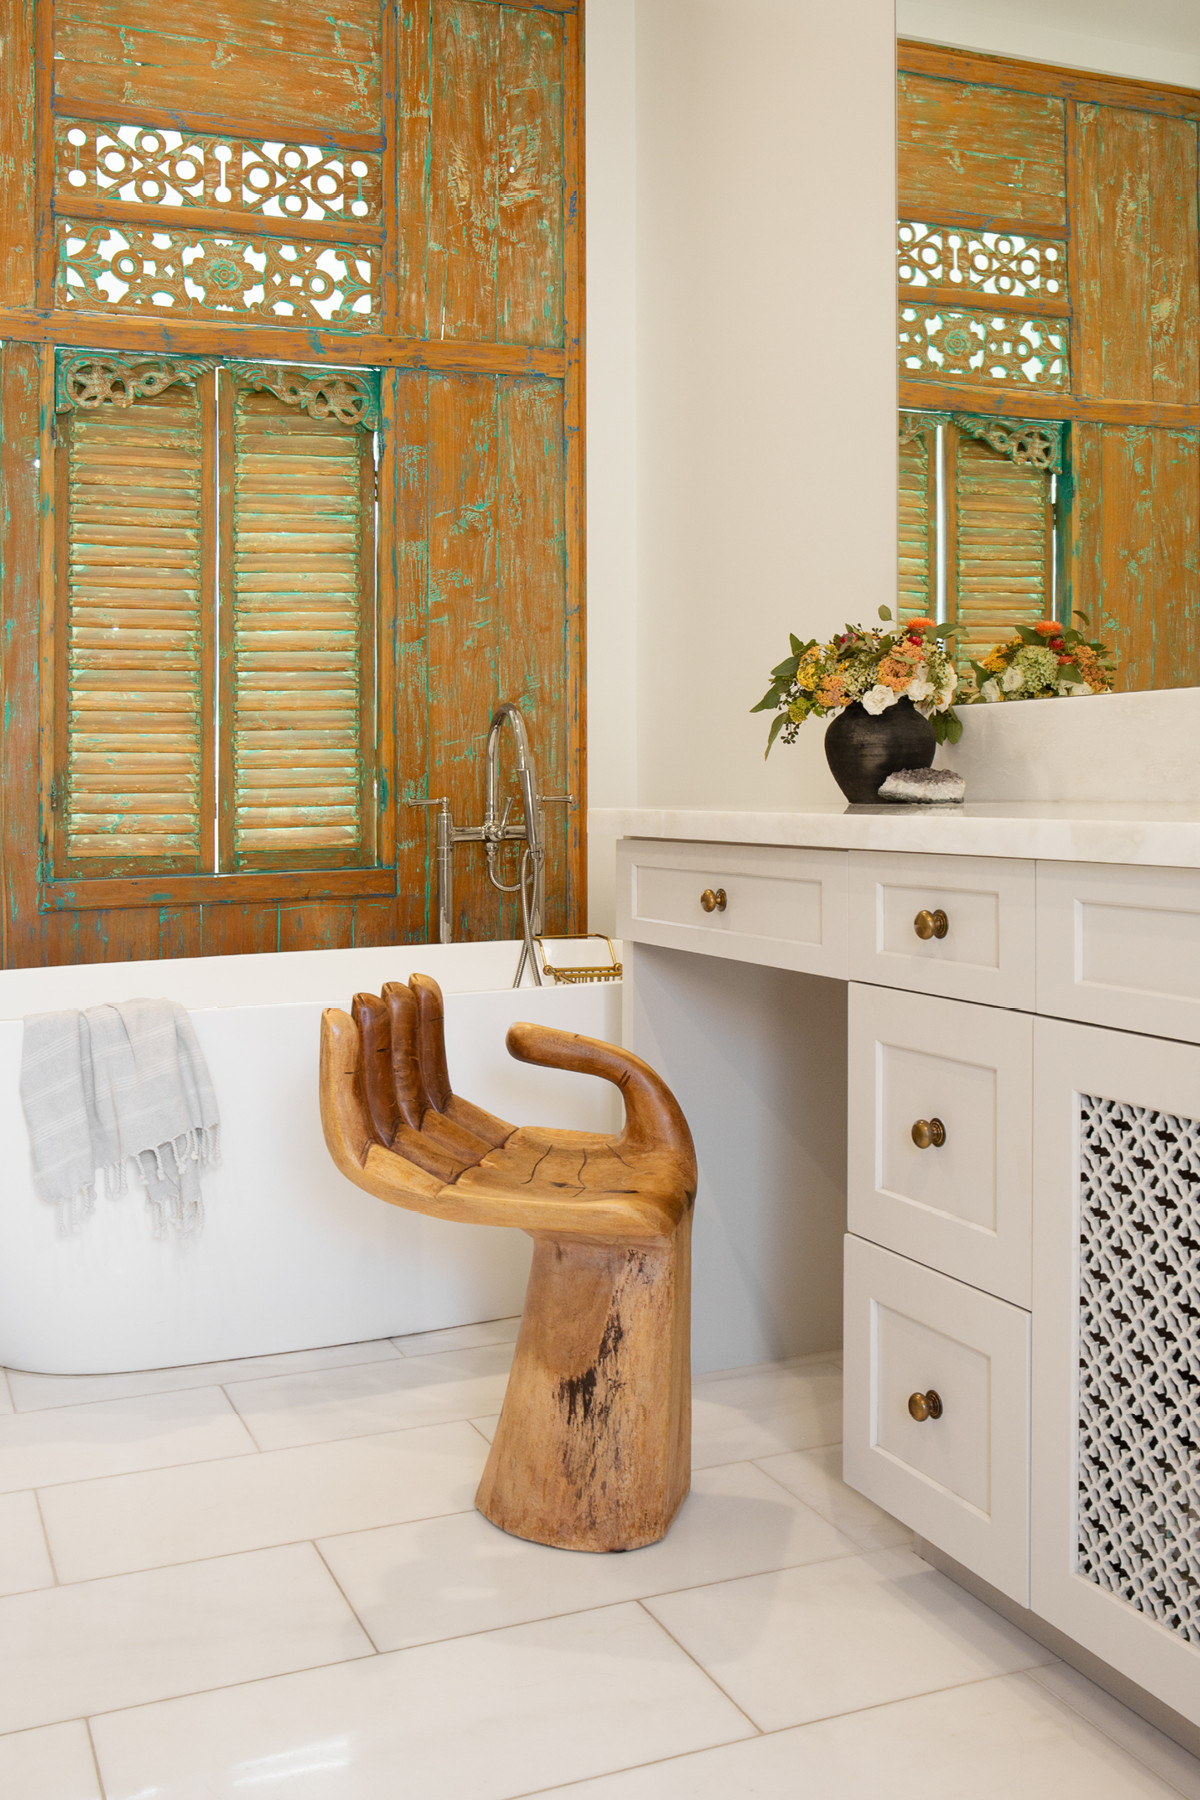 O'Brien's main bathroom strikes a happy medium between form and function, thanks to the wood-carved wall and Baliense hand stool. Vintage Hand Stool |The Home Depot Tub | Custom Cabinetry |Clé Tile Tiles.